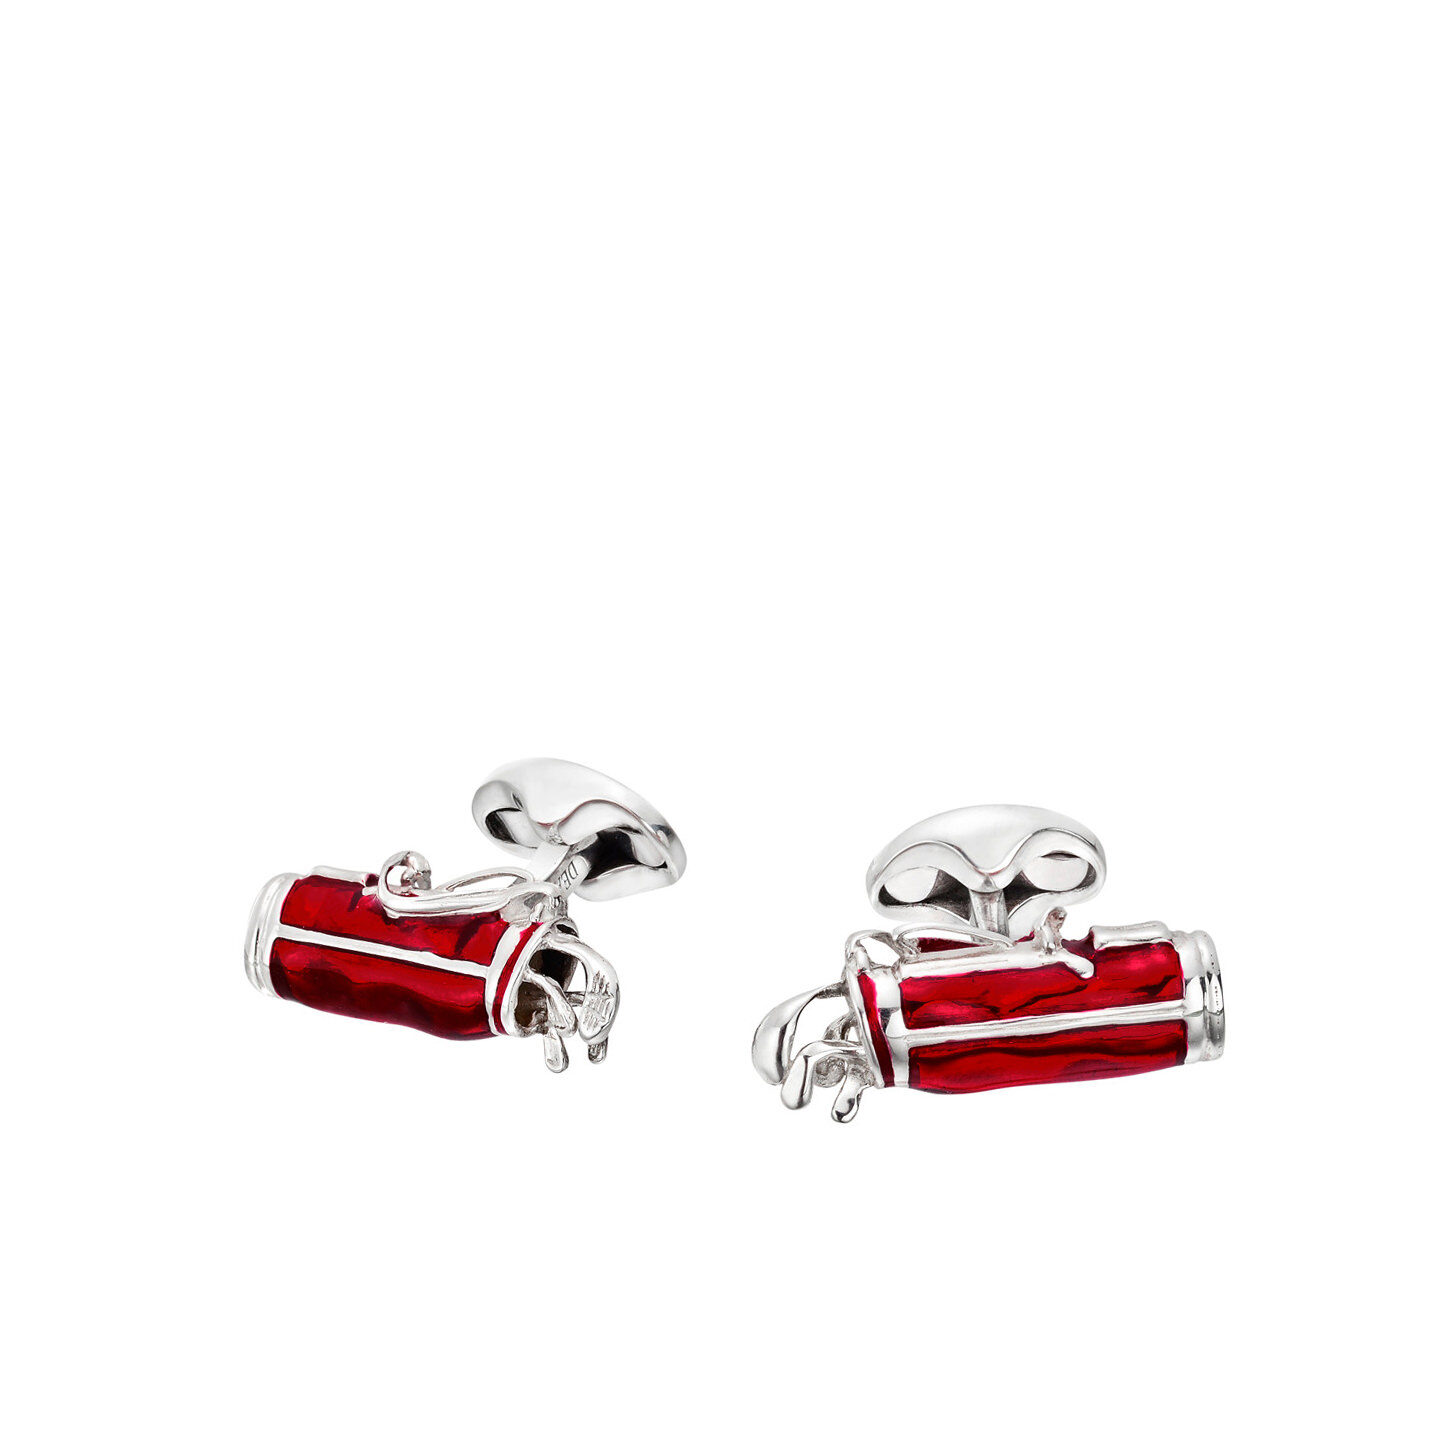 Deakin & Francis Sterling Silver Golf Bag Cufflinks